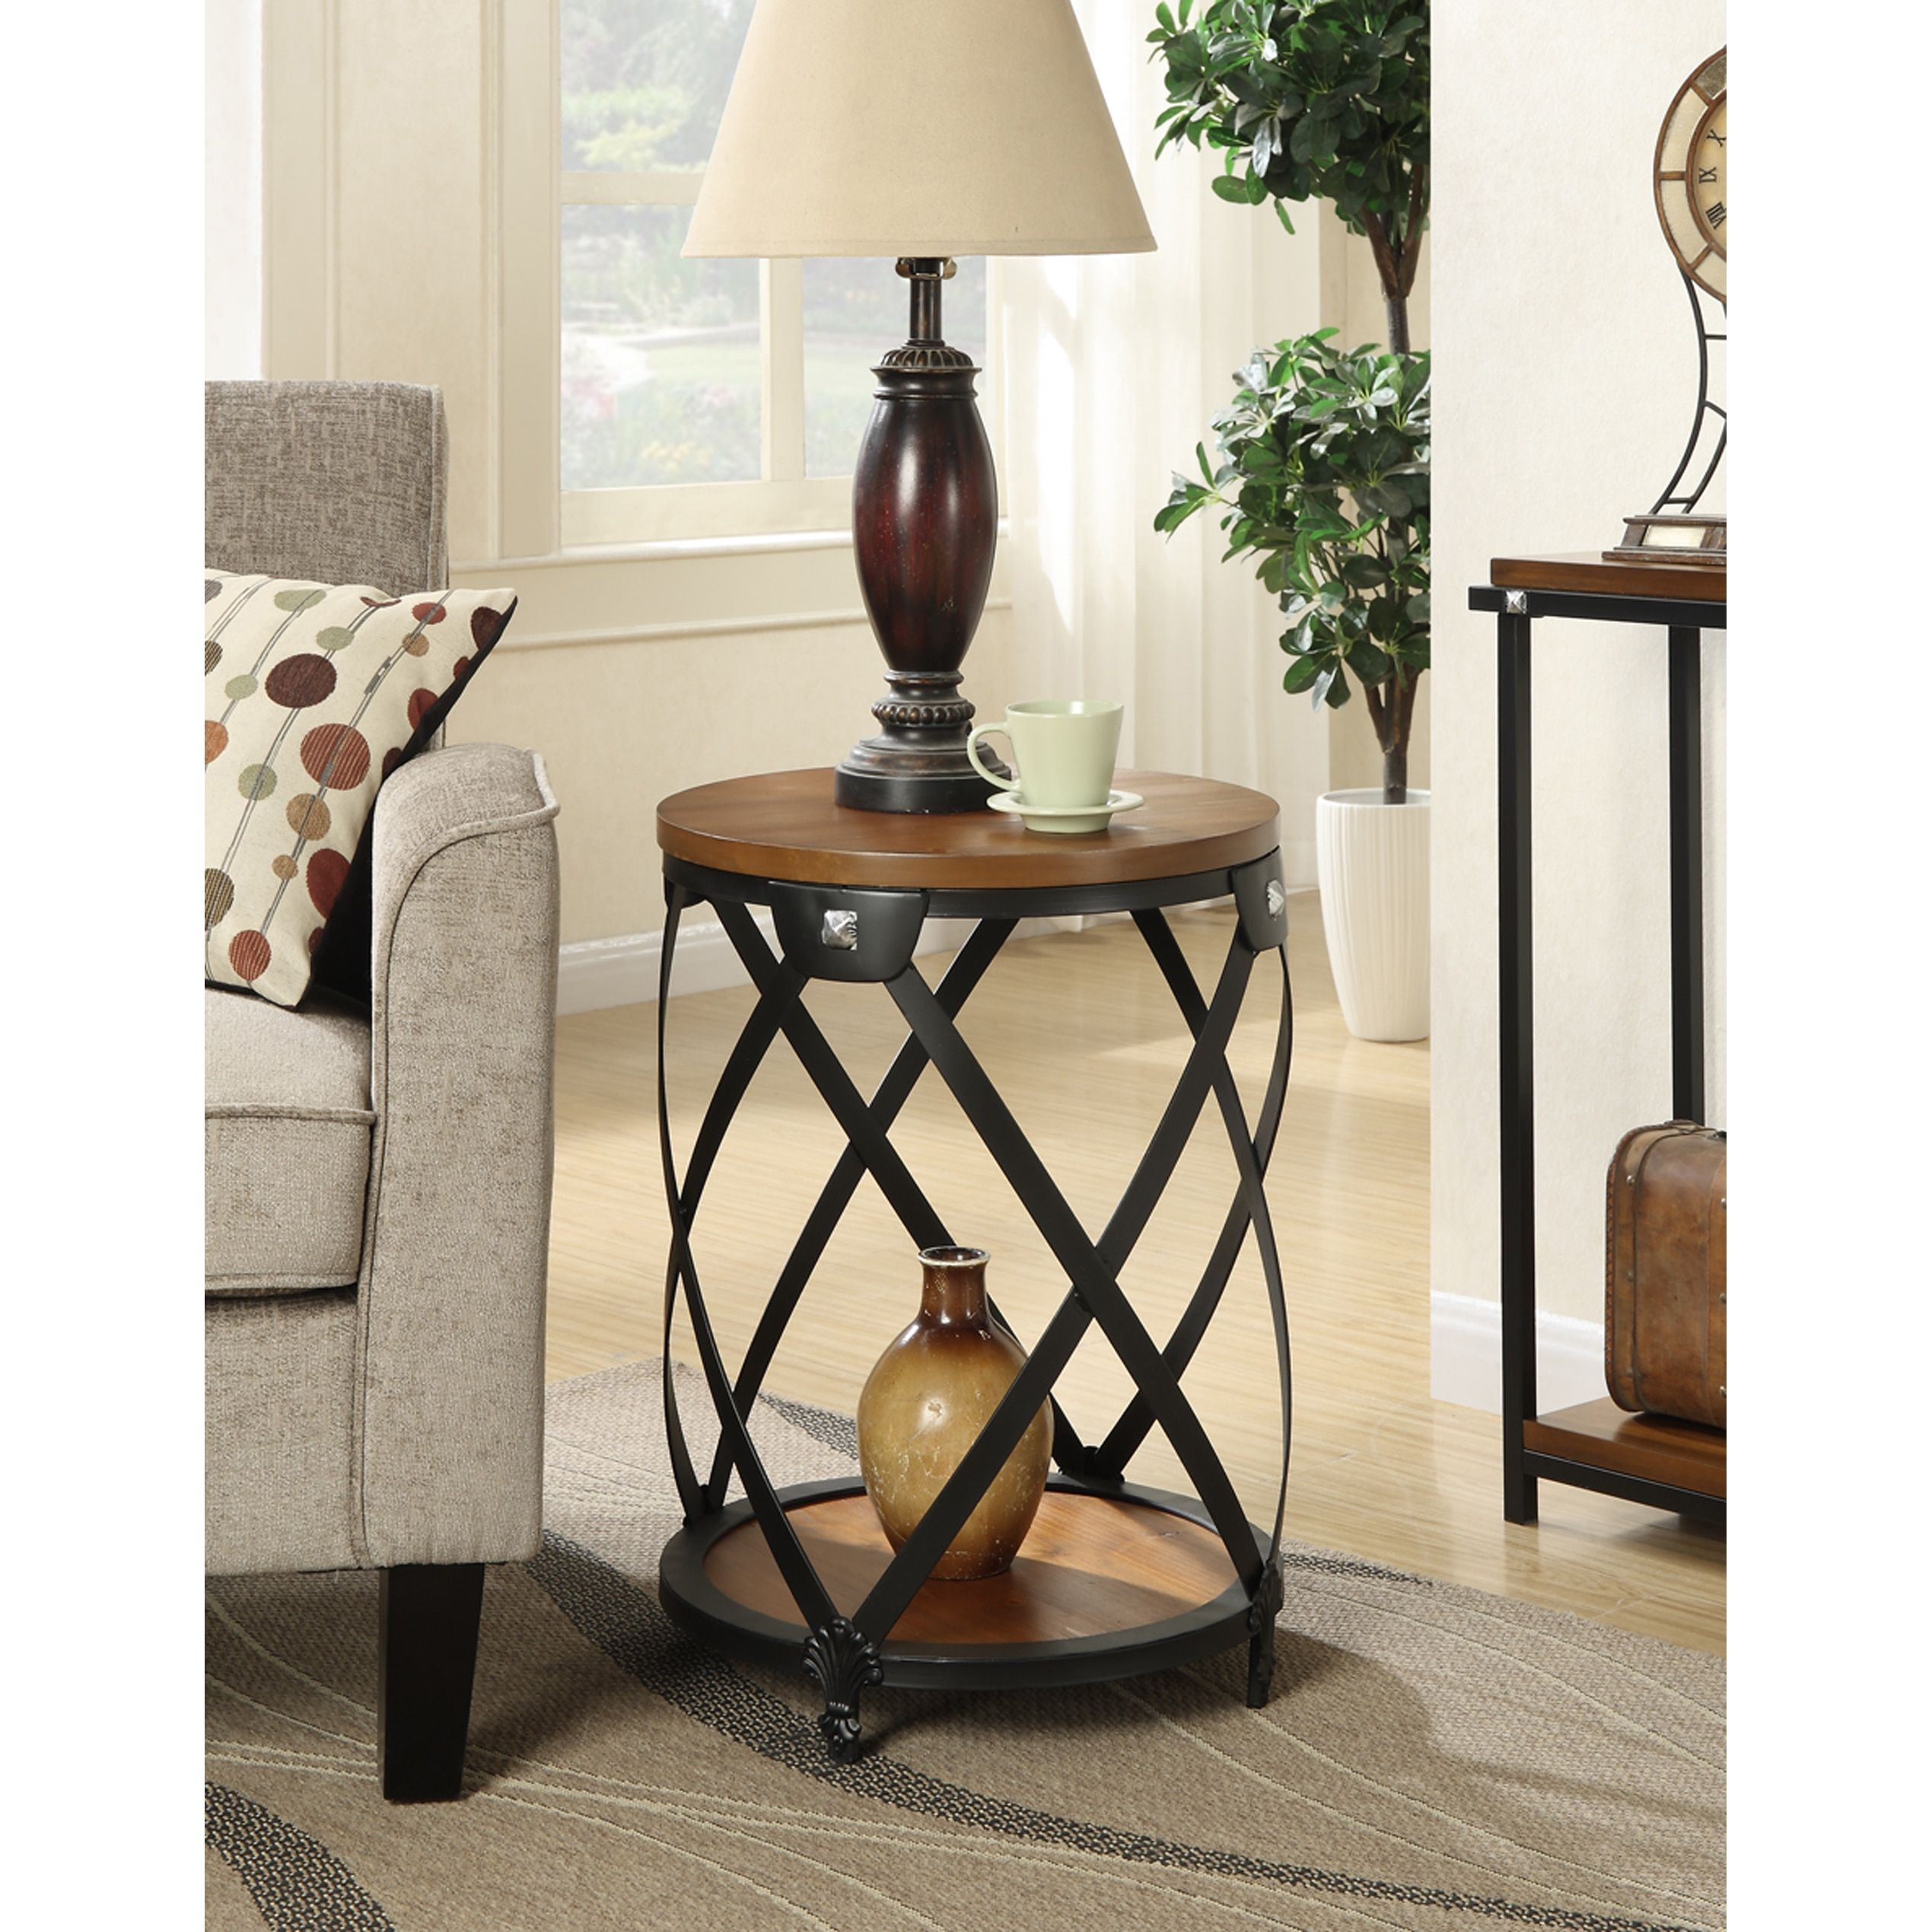 convenience concepts nordic black metal walnut wood round end table pinebrook accent dark super skinny pool lamps beach themed bathroom accessories small centerpiece ideas plus